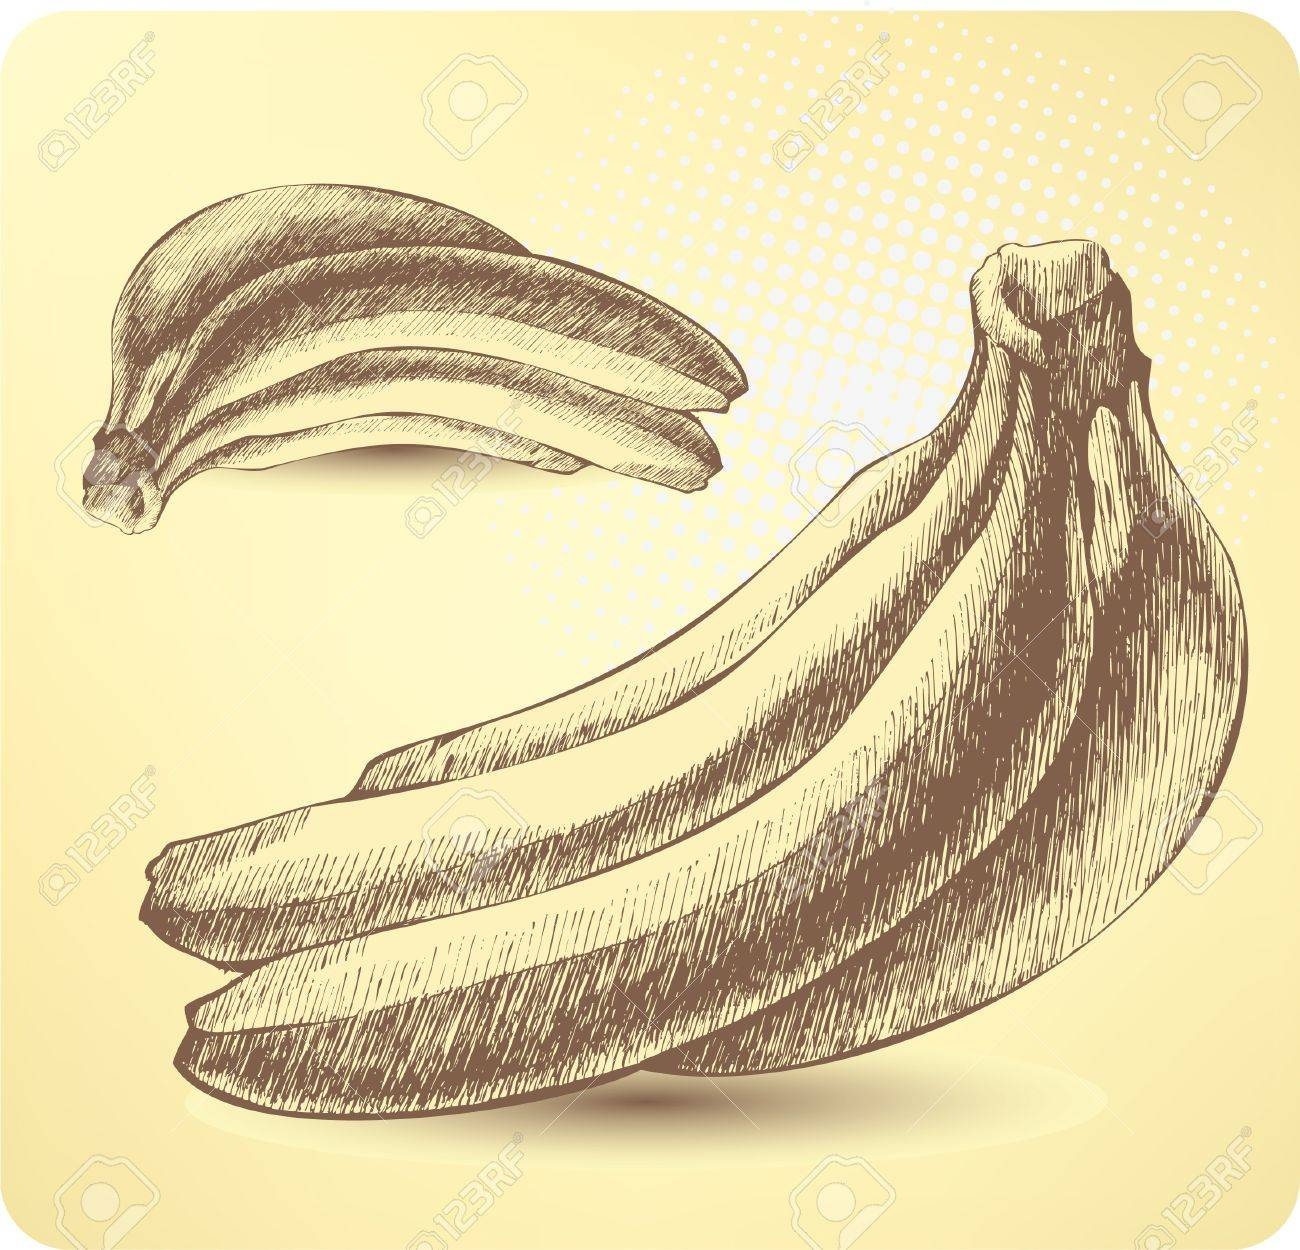 Bunch Of Ripe Bananas Hand Drawing Stock Vector